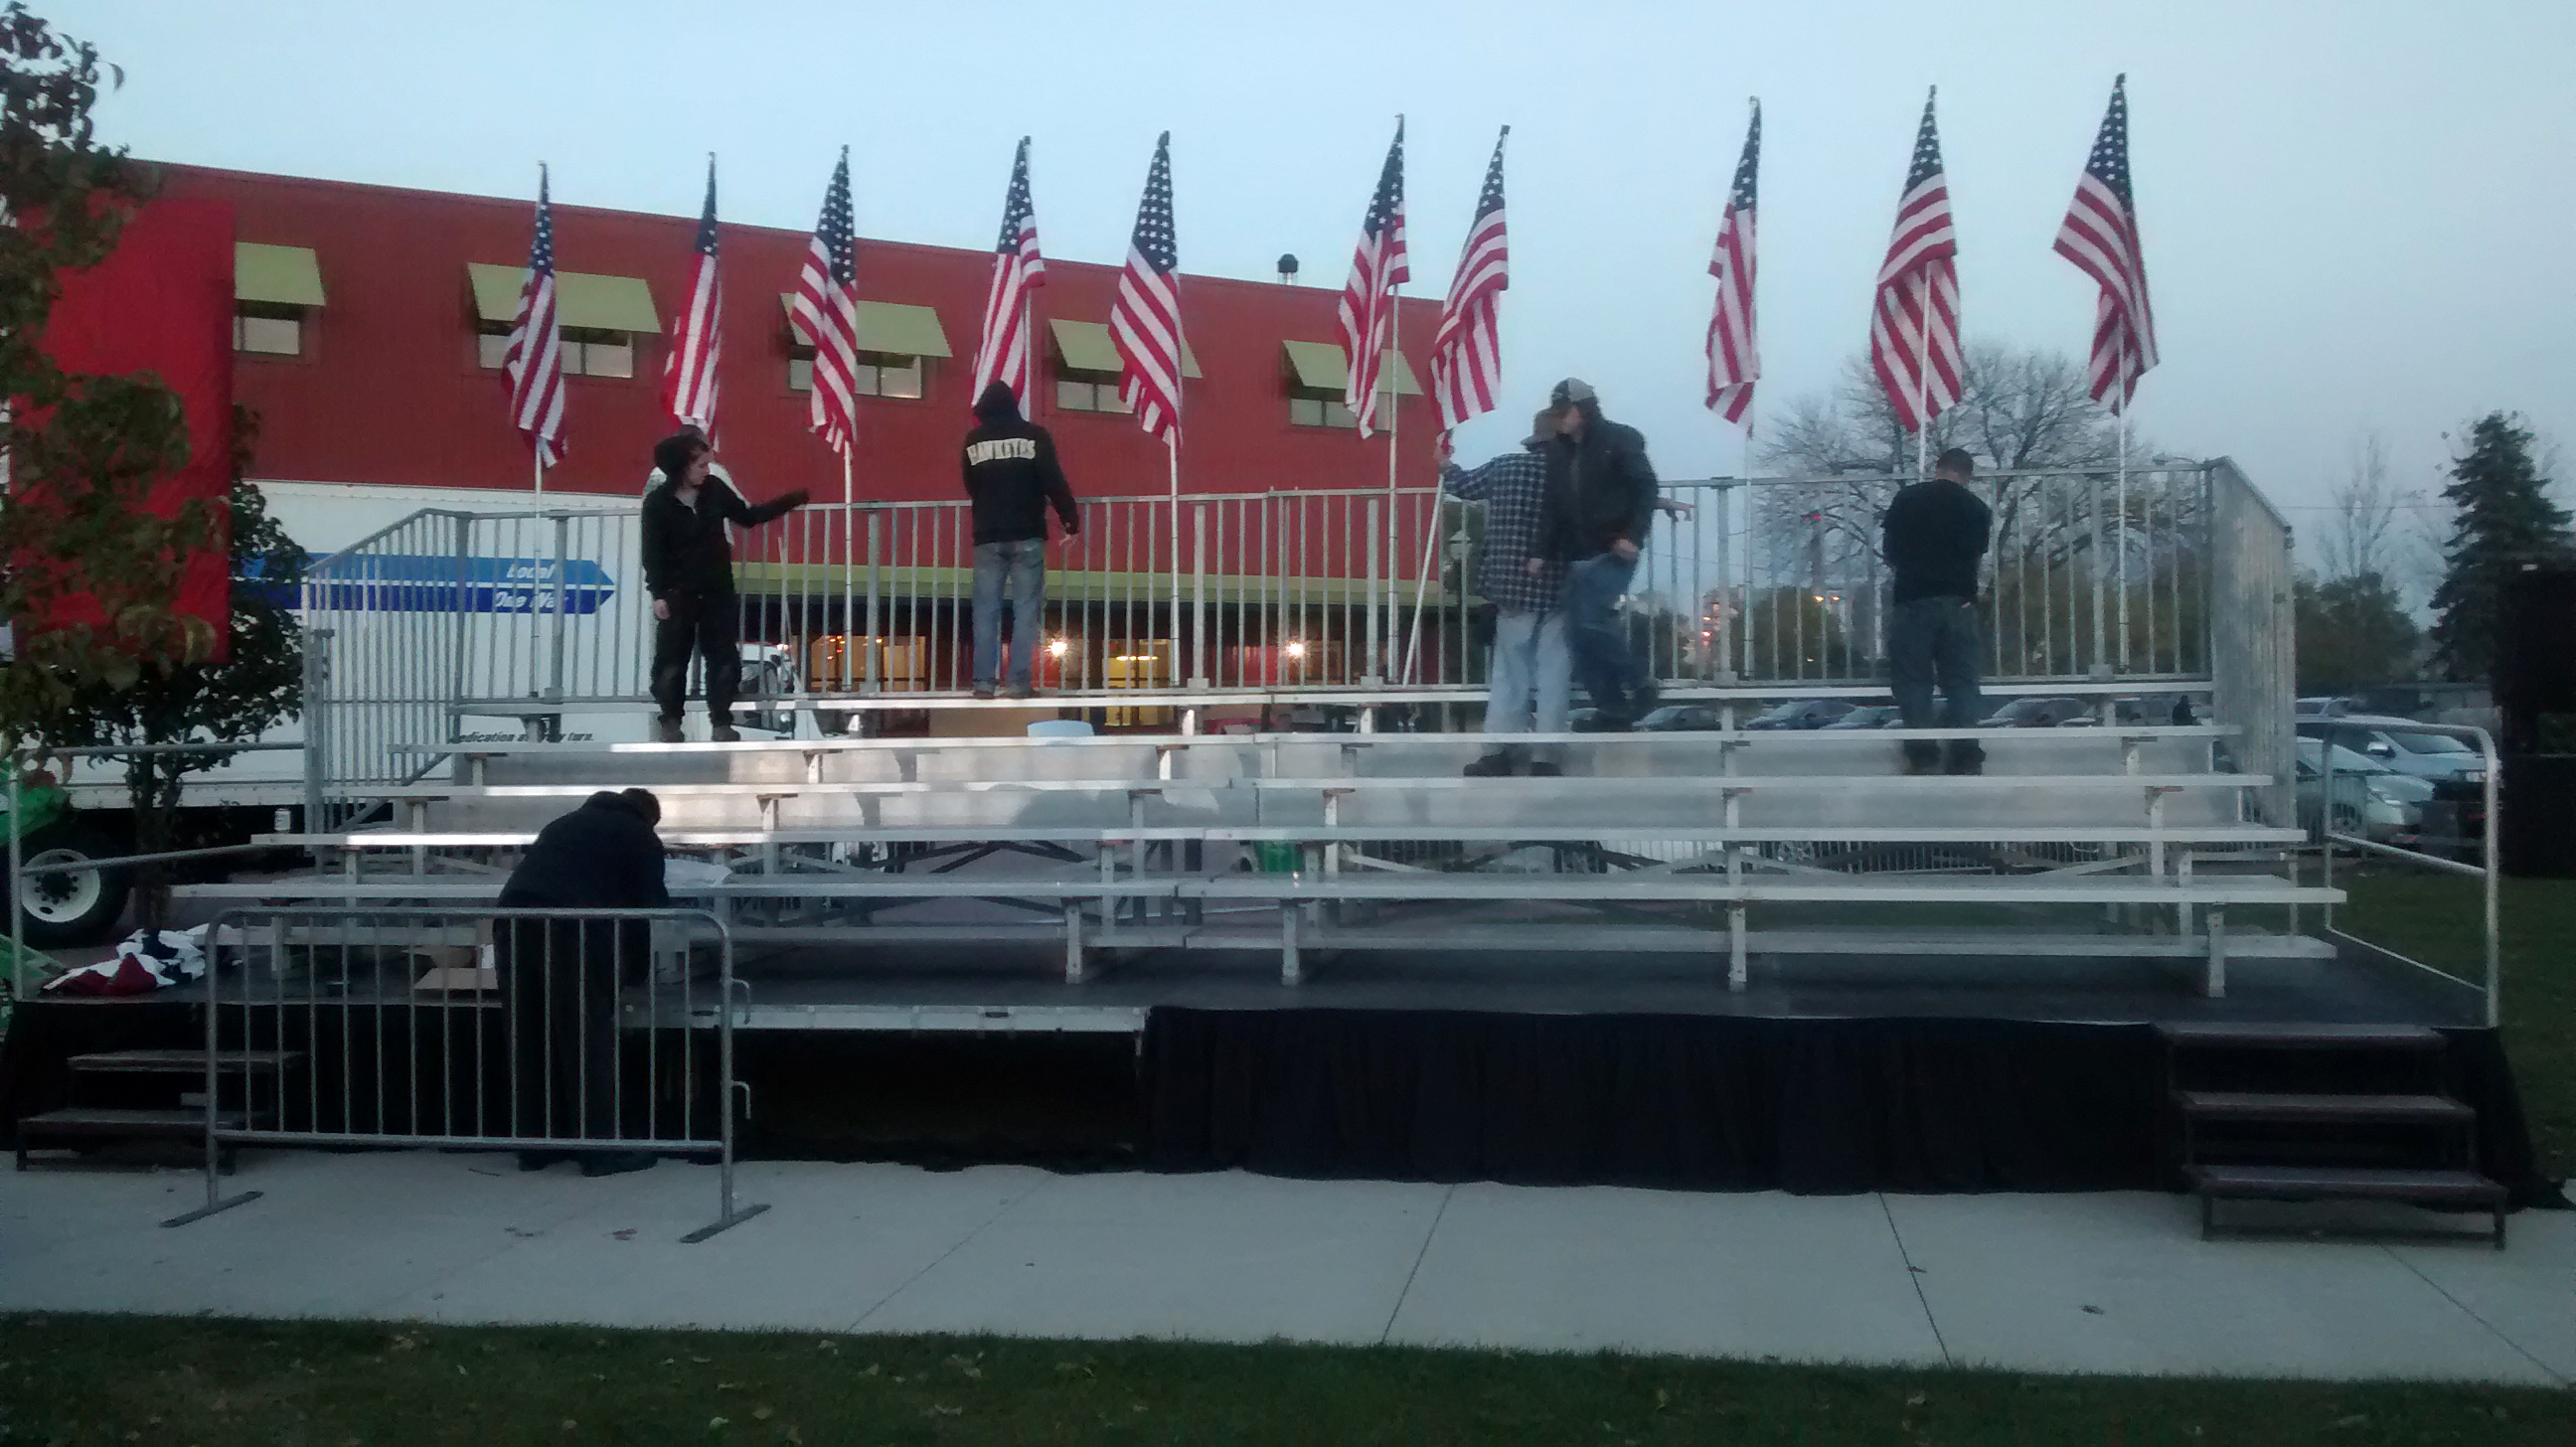 Our bleachers on the level stage we setup for Hillary Clinton political rally at NewBo City Market in Cedar Rapids, Iowa